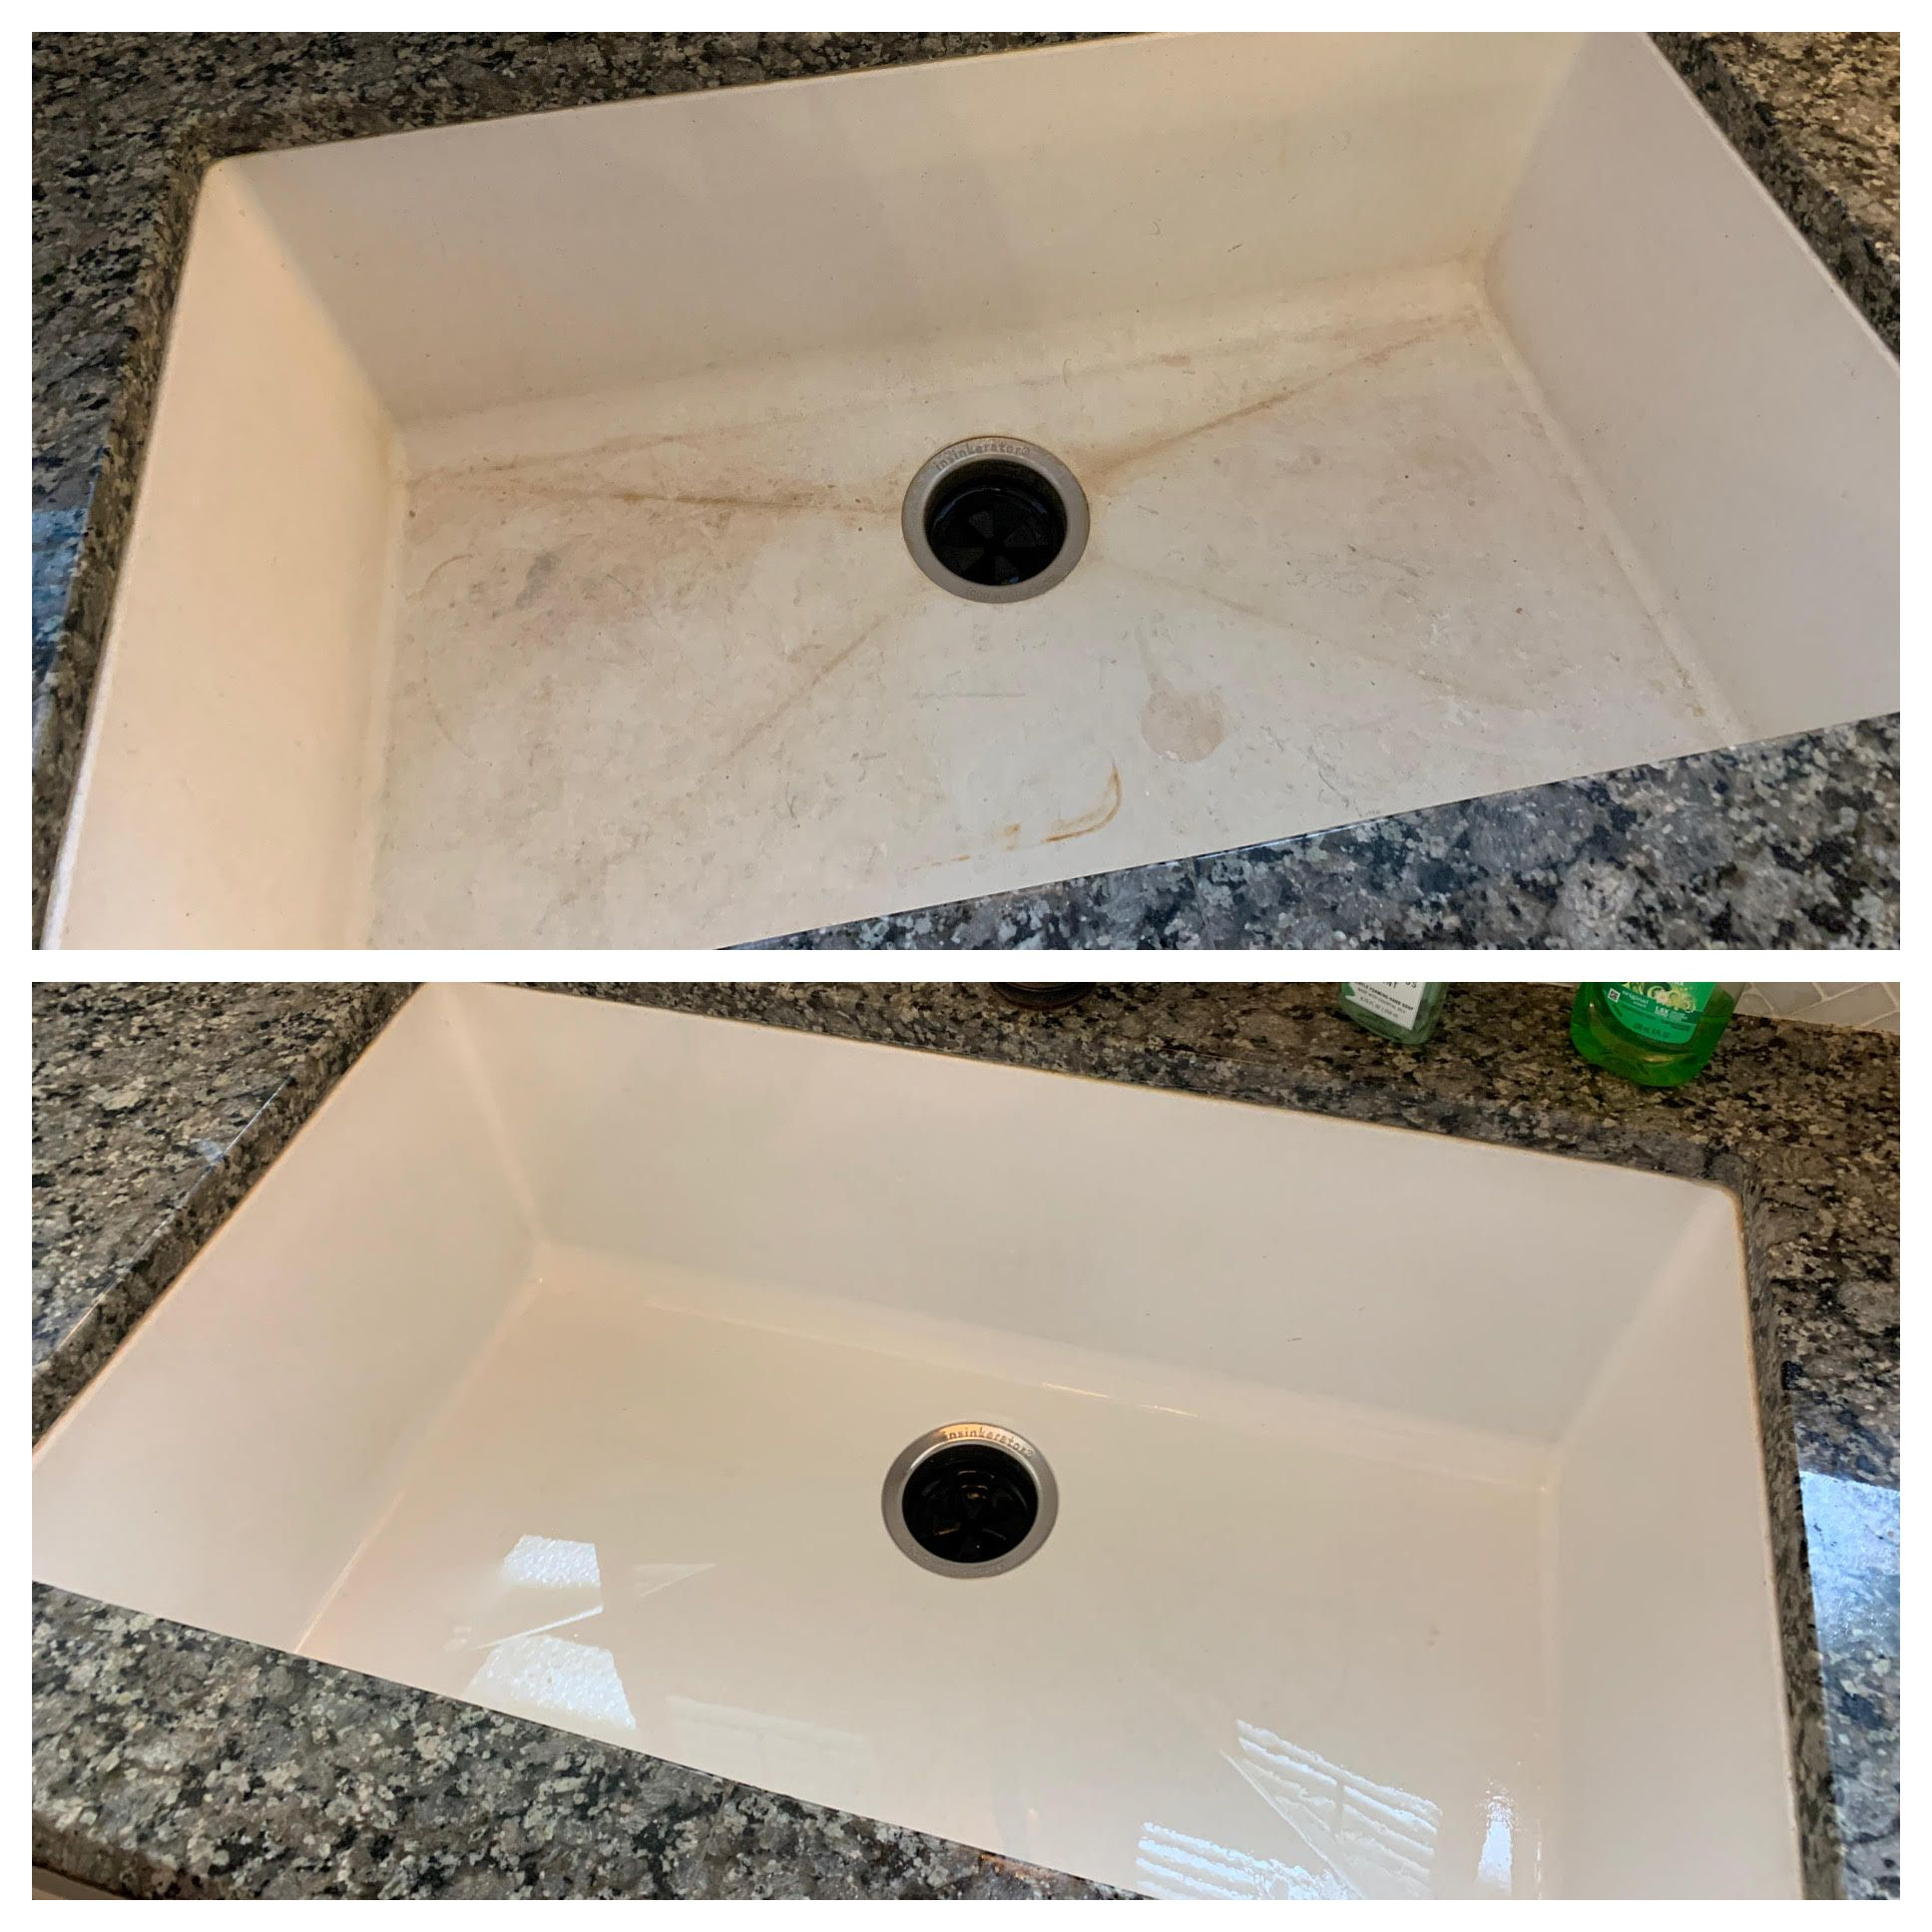 Dirty Sink Before and After